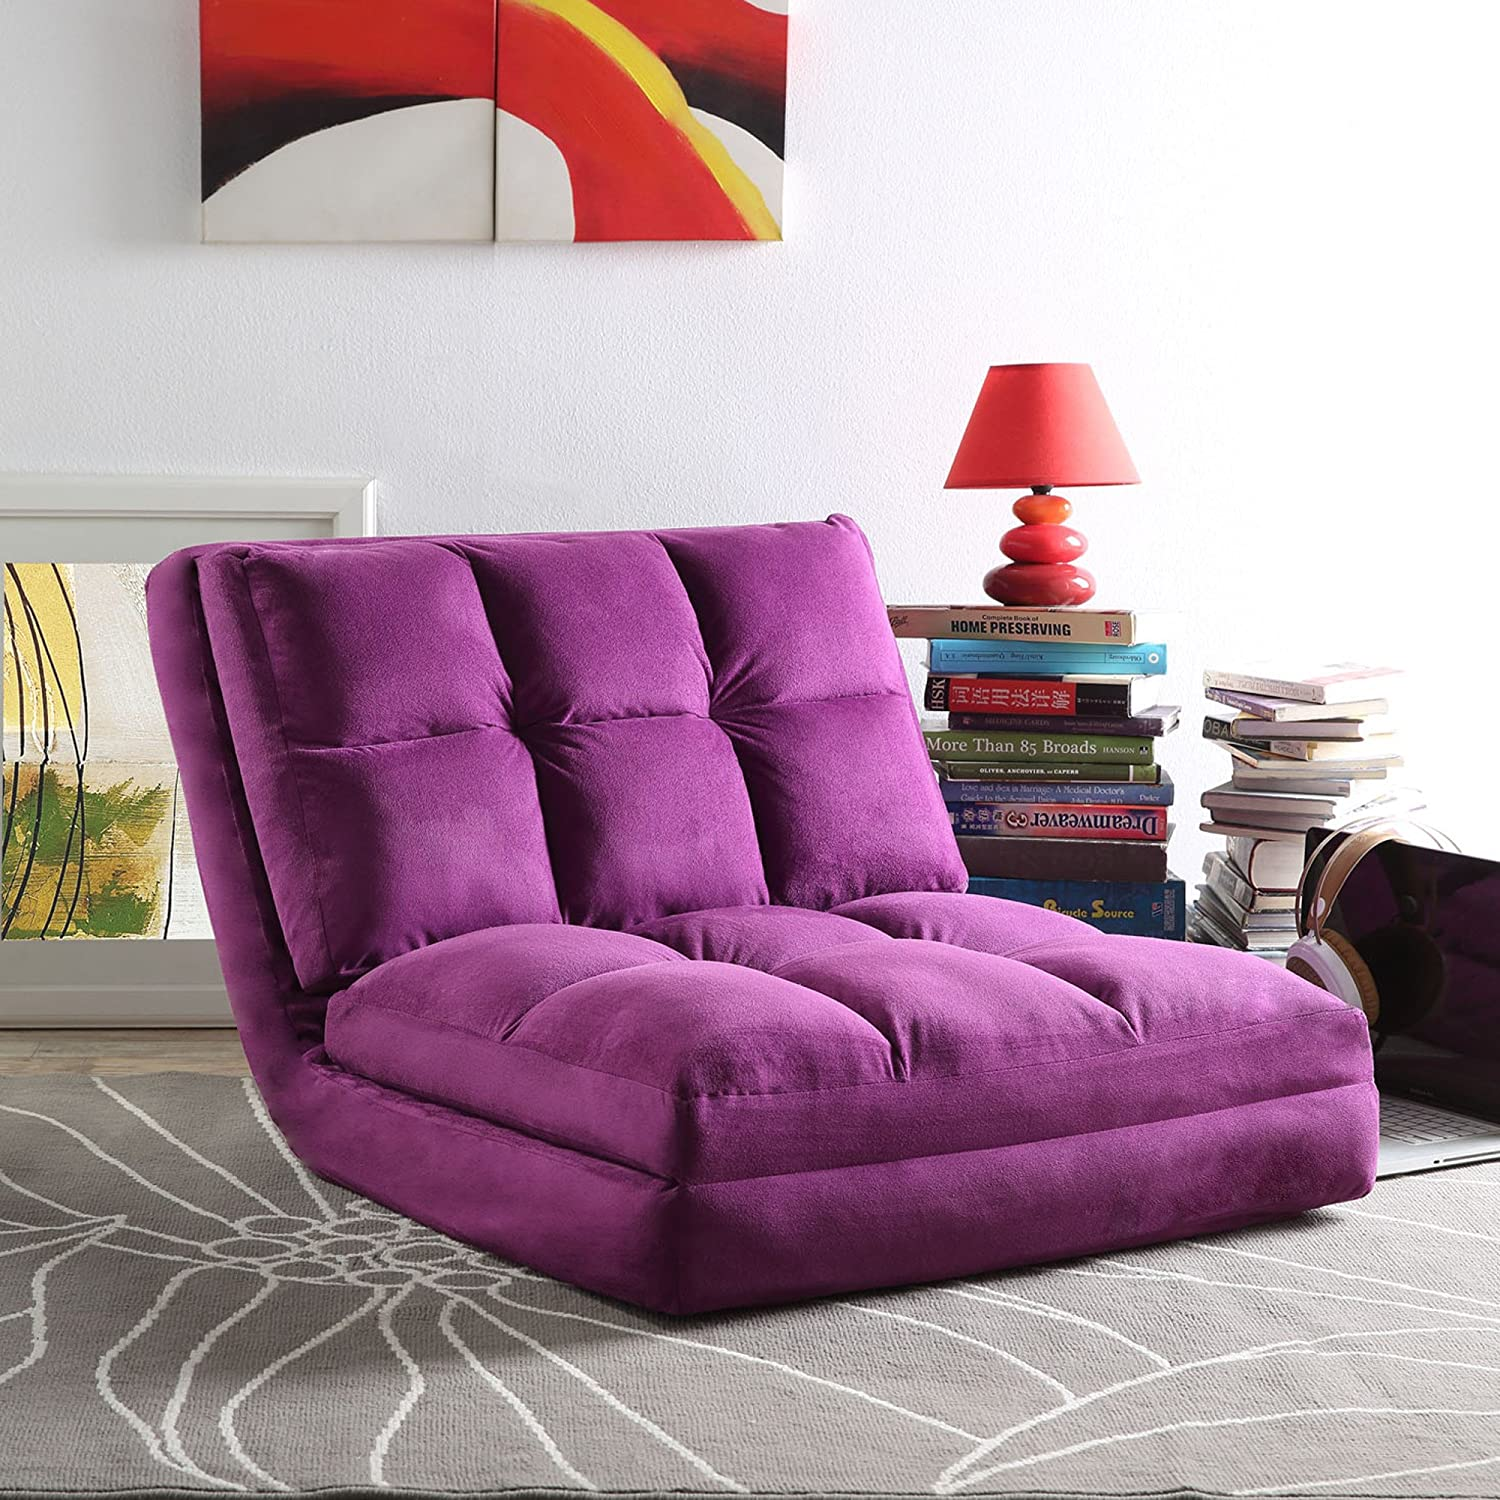 Loungie Micro Suede 5 Position Adjustable Convertible Flip Chair, Sleeper Dorm Bed Couch Lounger Sofa, Purple